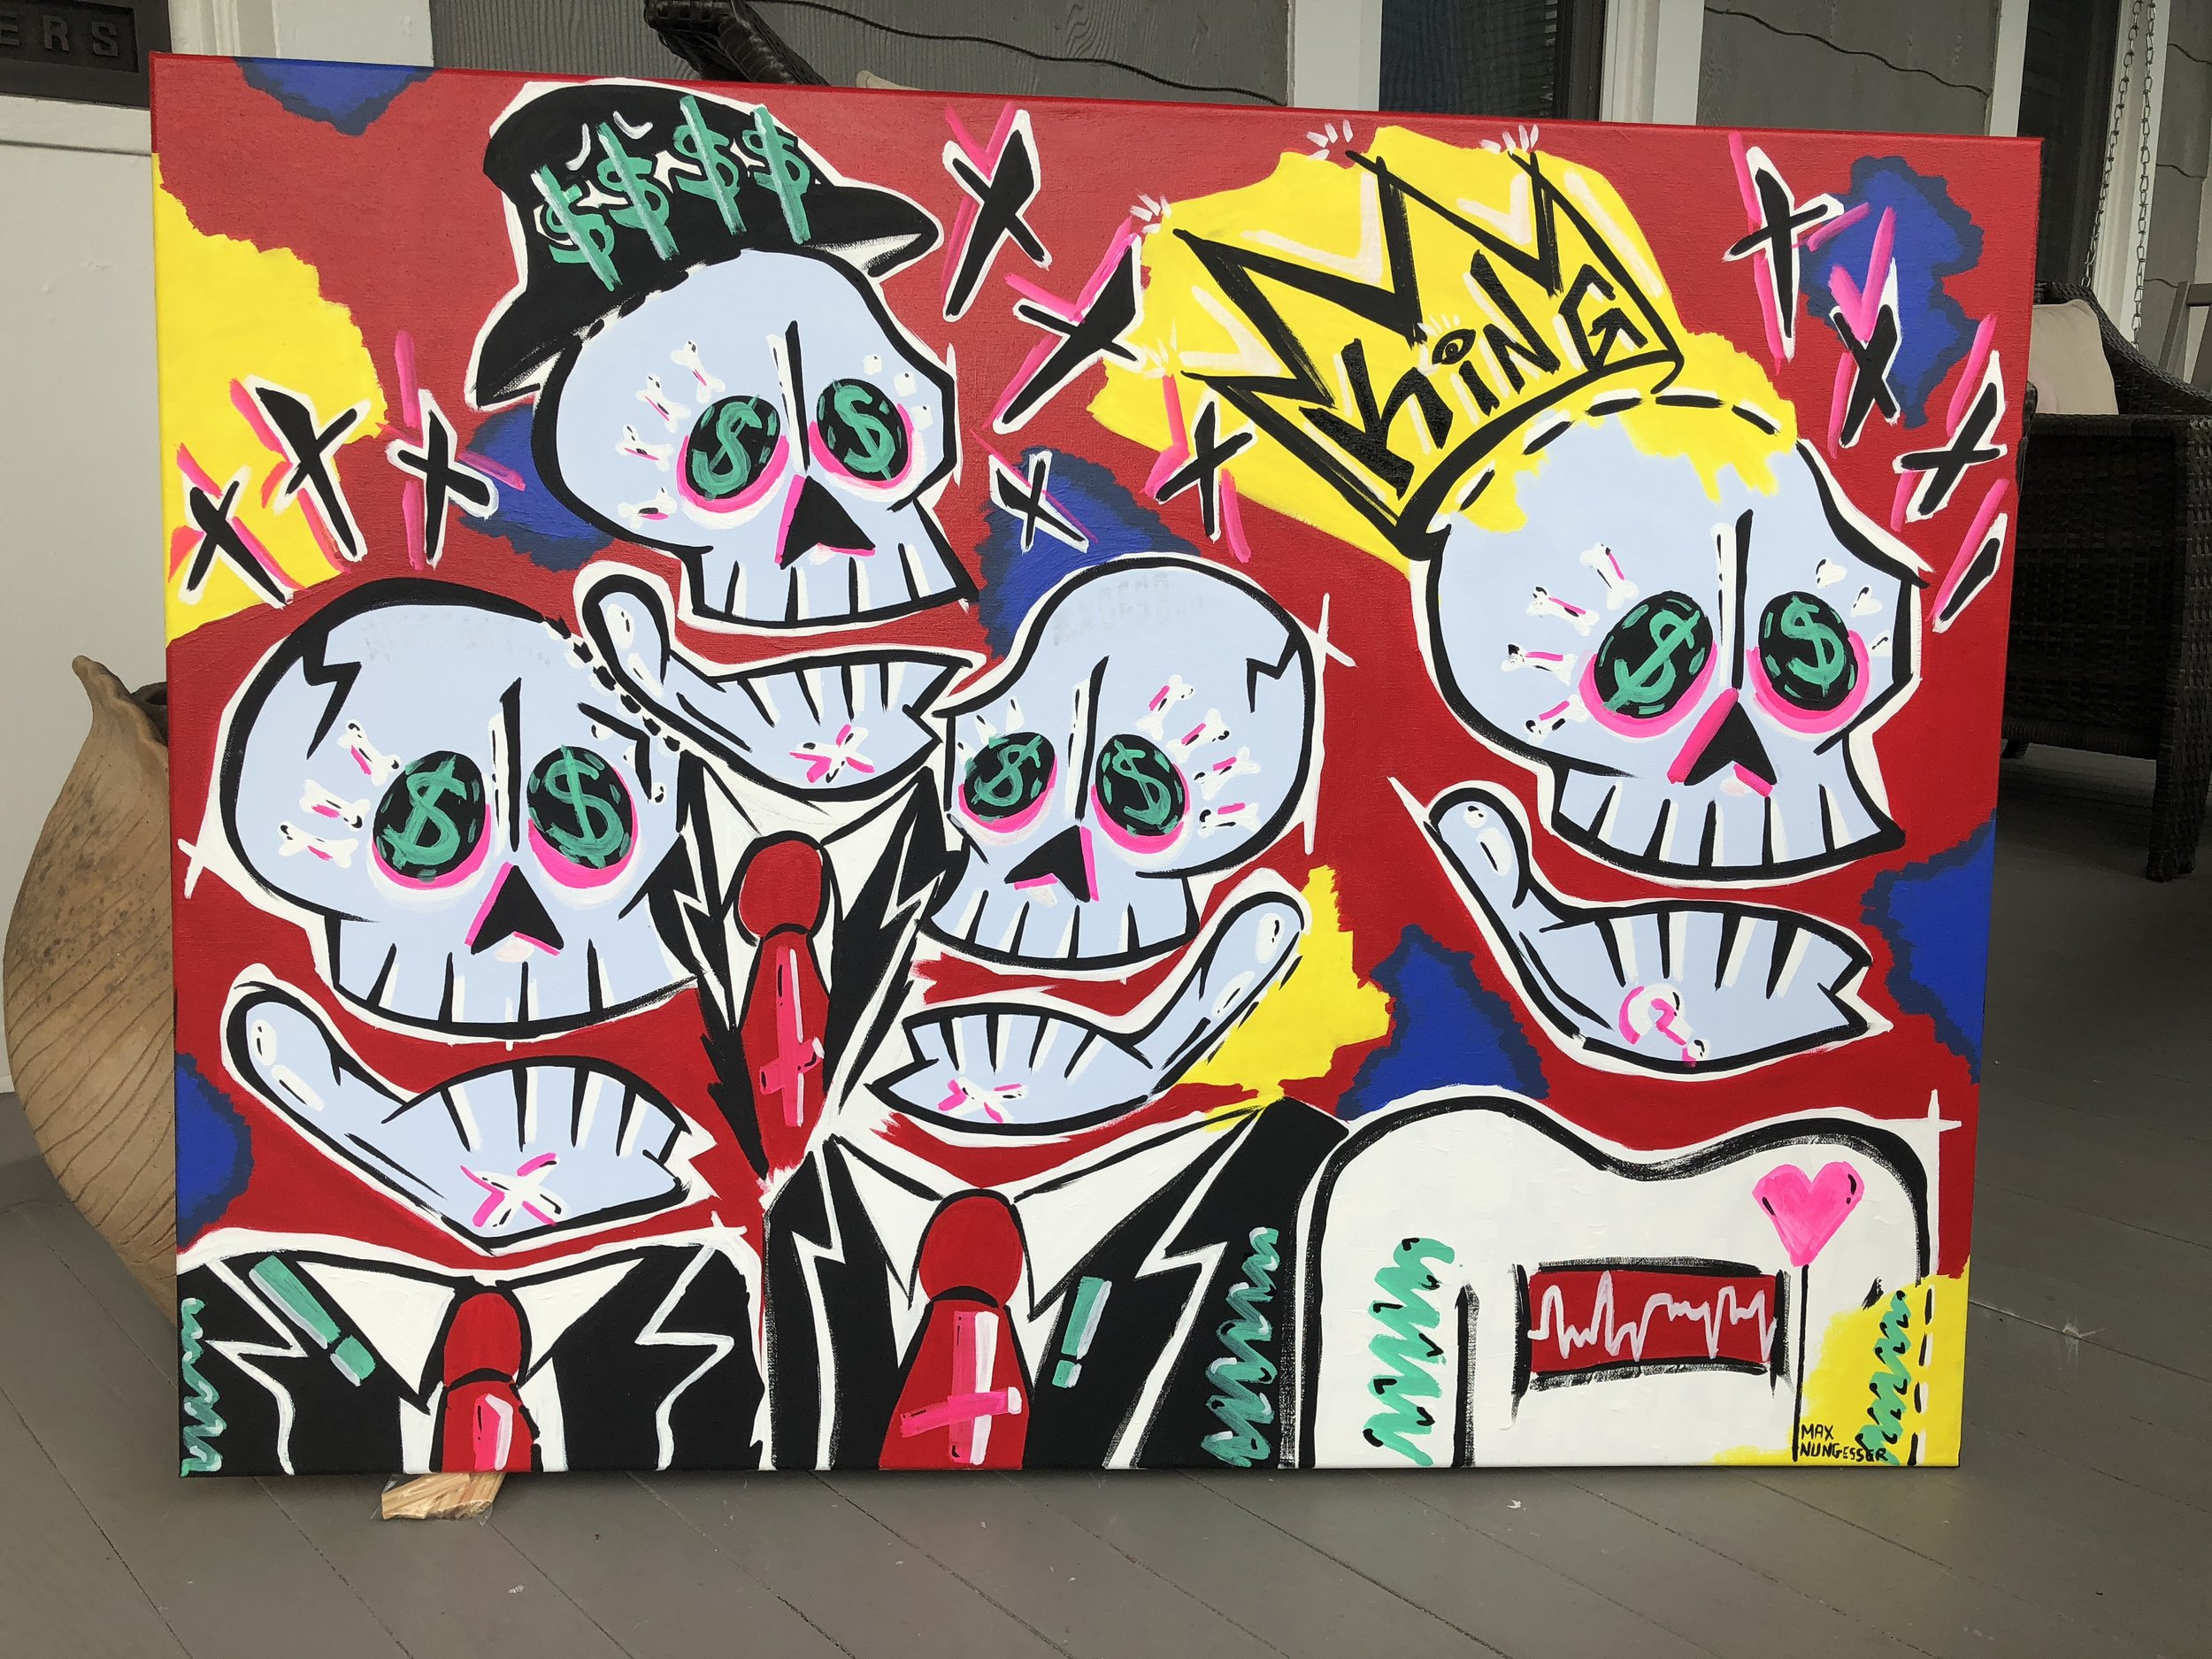 Hunger  (2ft.x3ft.)  -  acrylic & marker on canvas - $350.00  To purchase email  maxnungesser@gmail.com